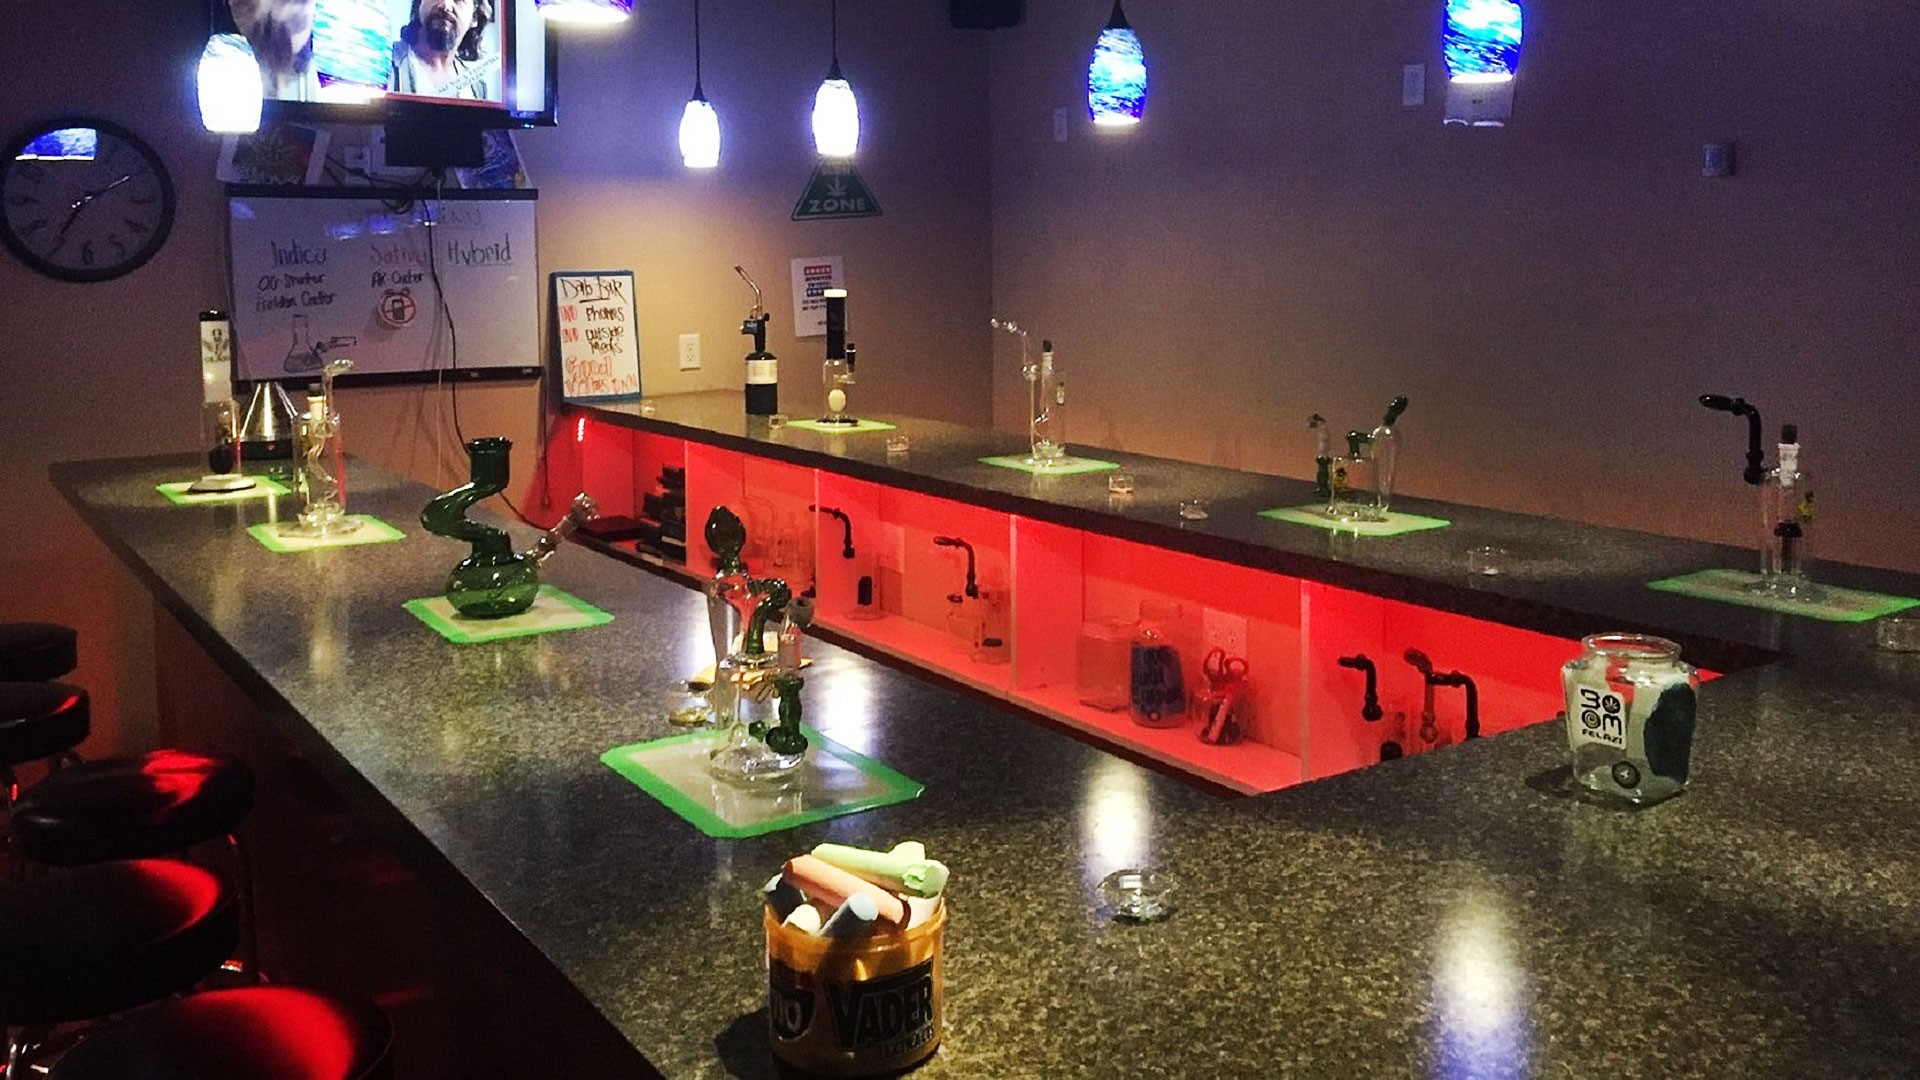 CaptainJacks dab bar and medical marijuana dispensary in Upland, California